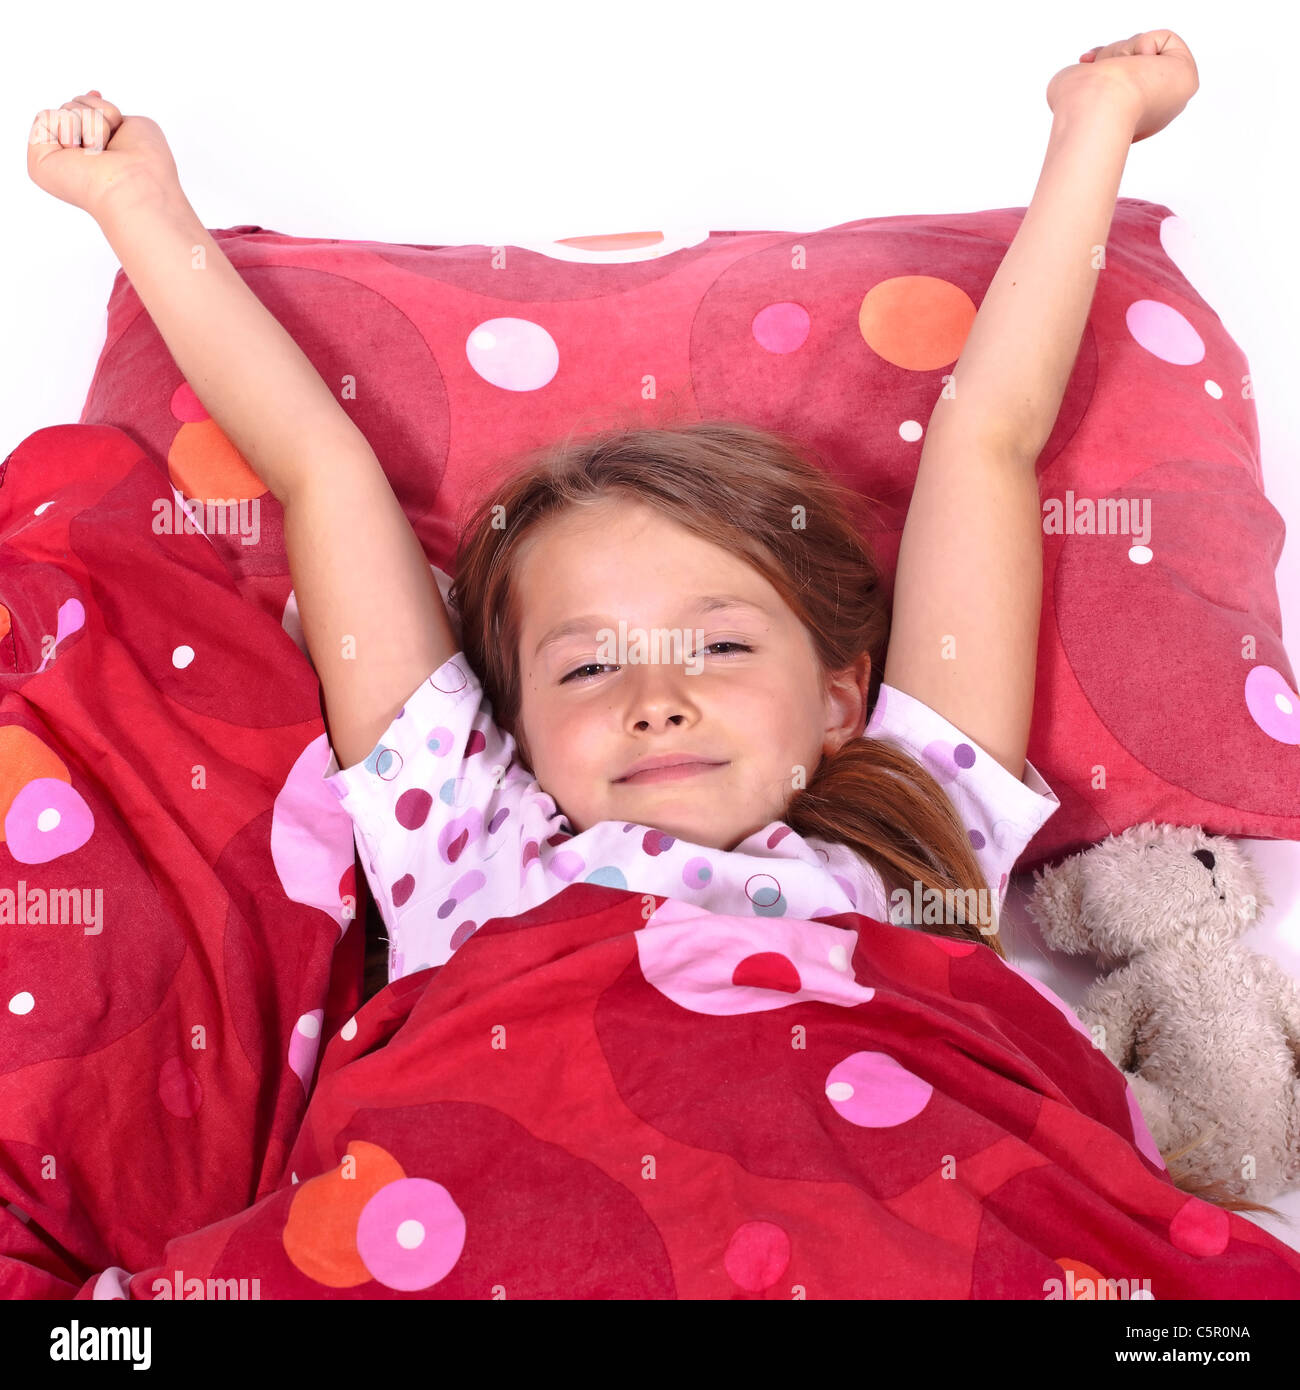 an eight-year-old girl in bed with blanket and pillows and stuffed animals - Stock Image